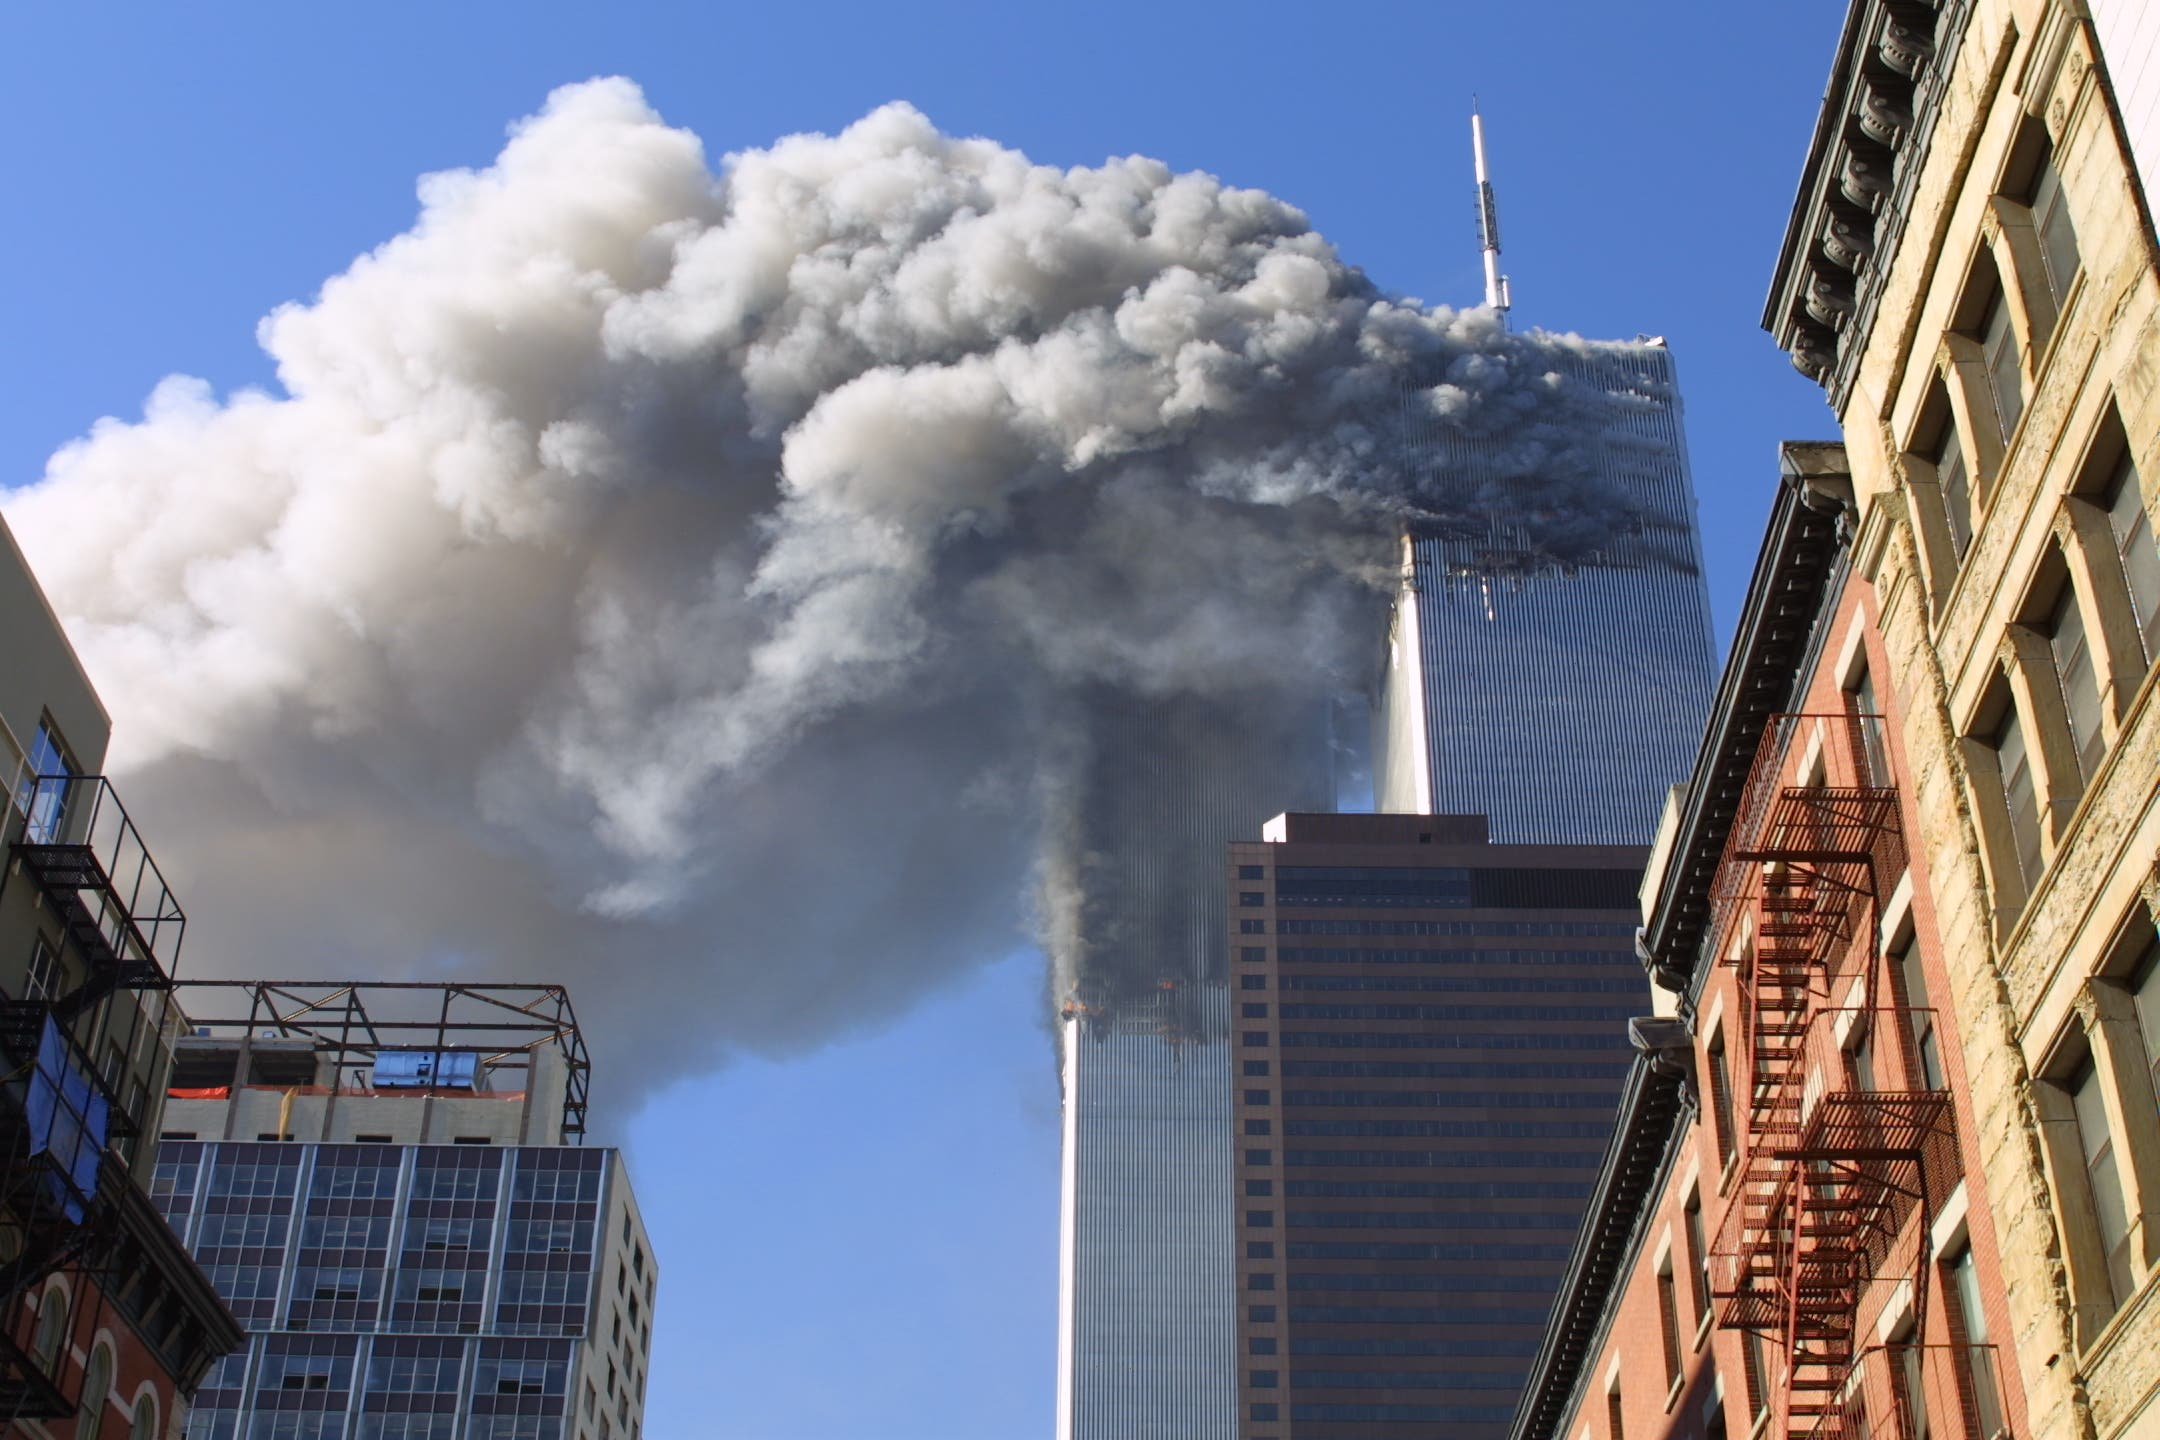 On September 11, 2001 the twin towers of the World Trade Center burn after hijacked planes crashed into them in New York. (File photo: AP)